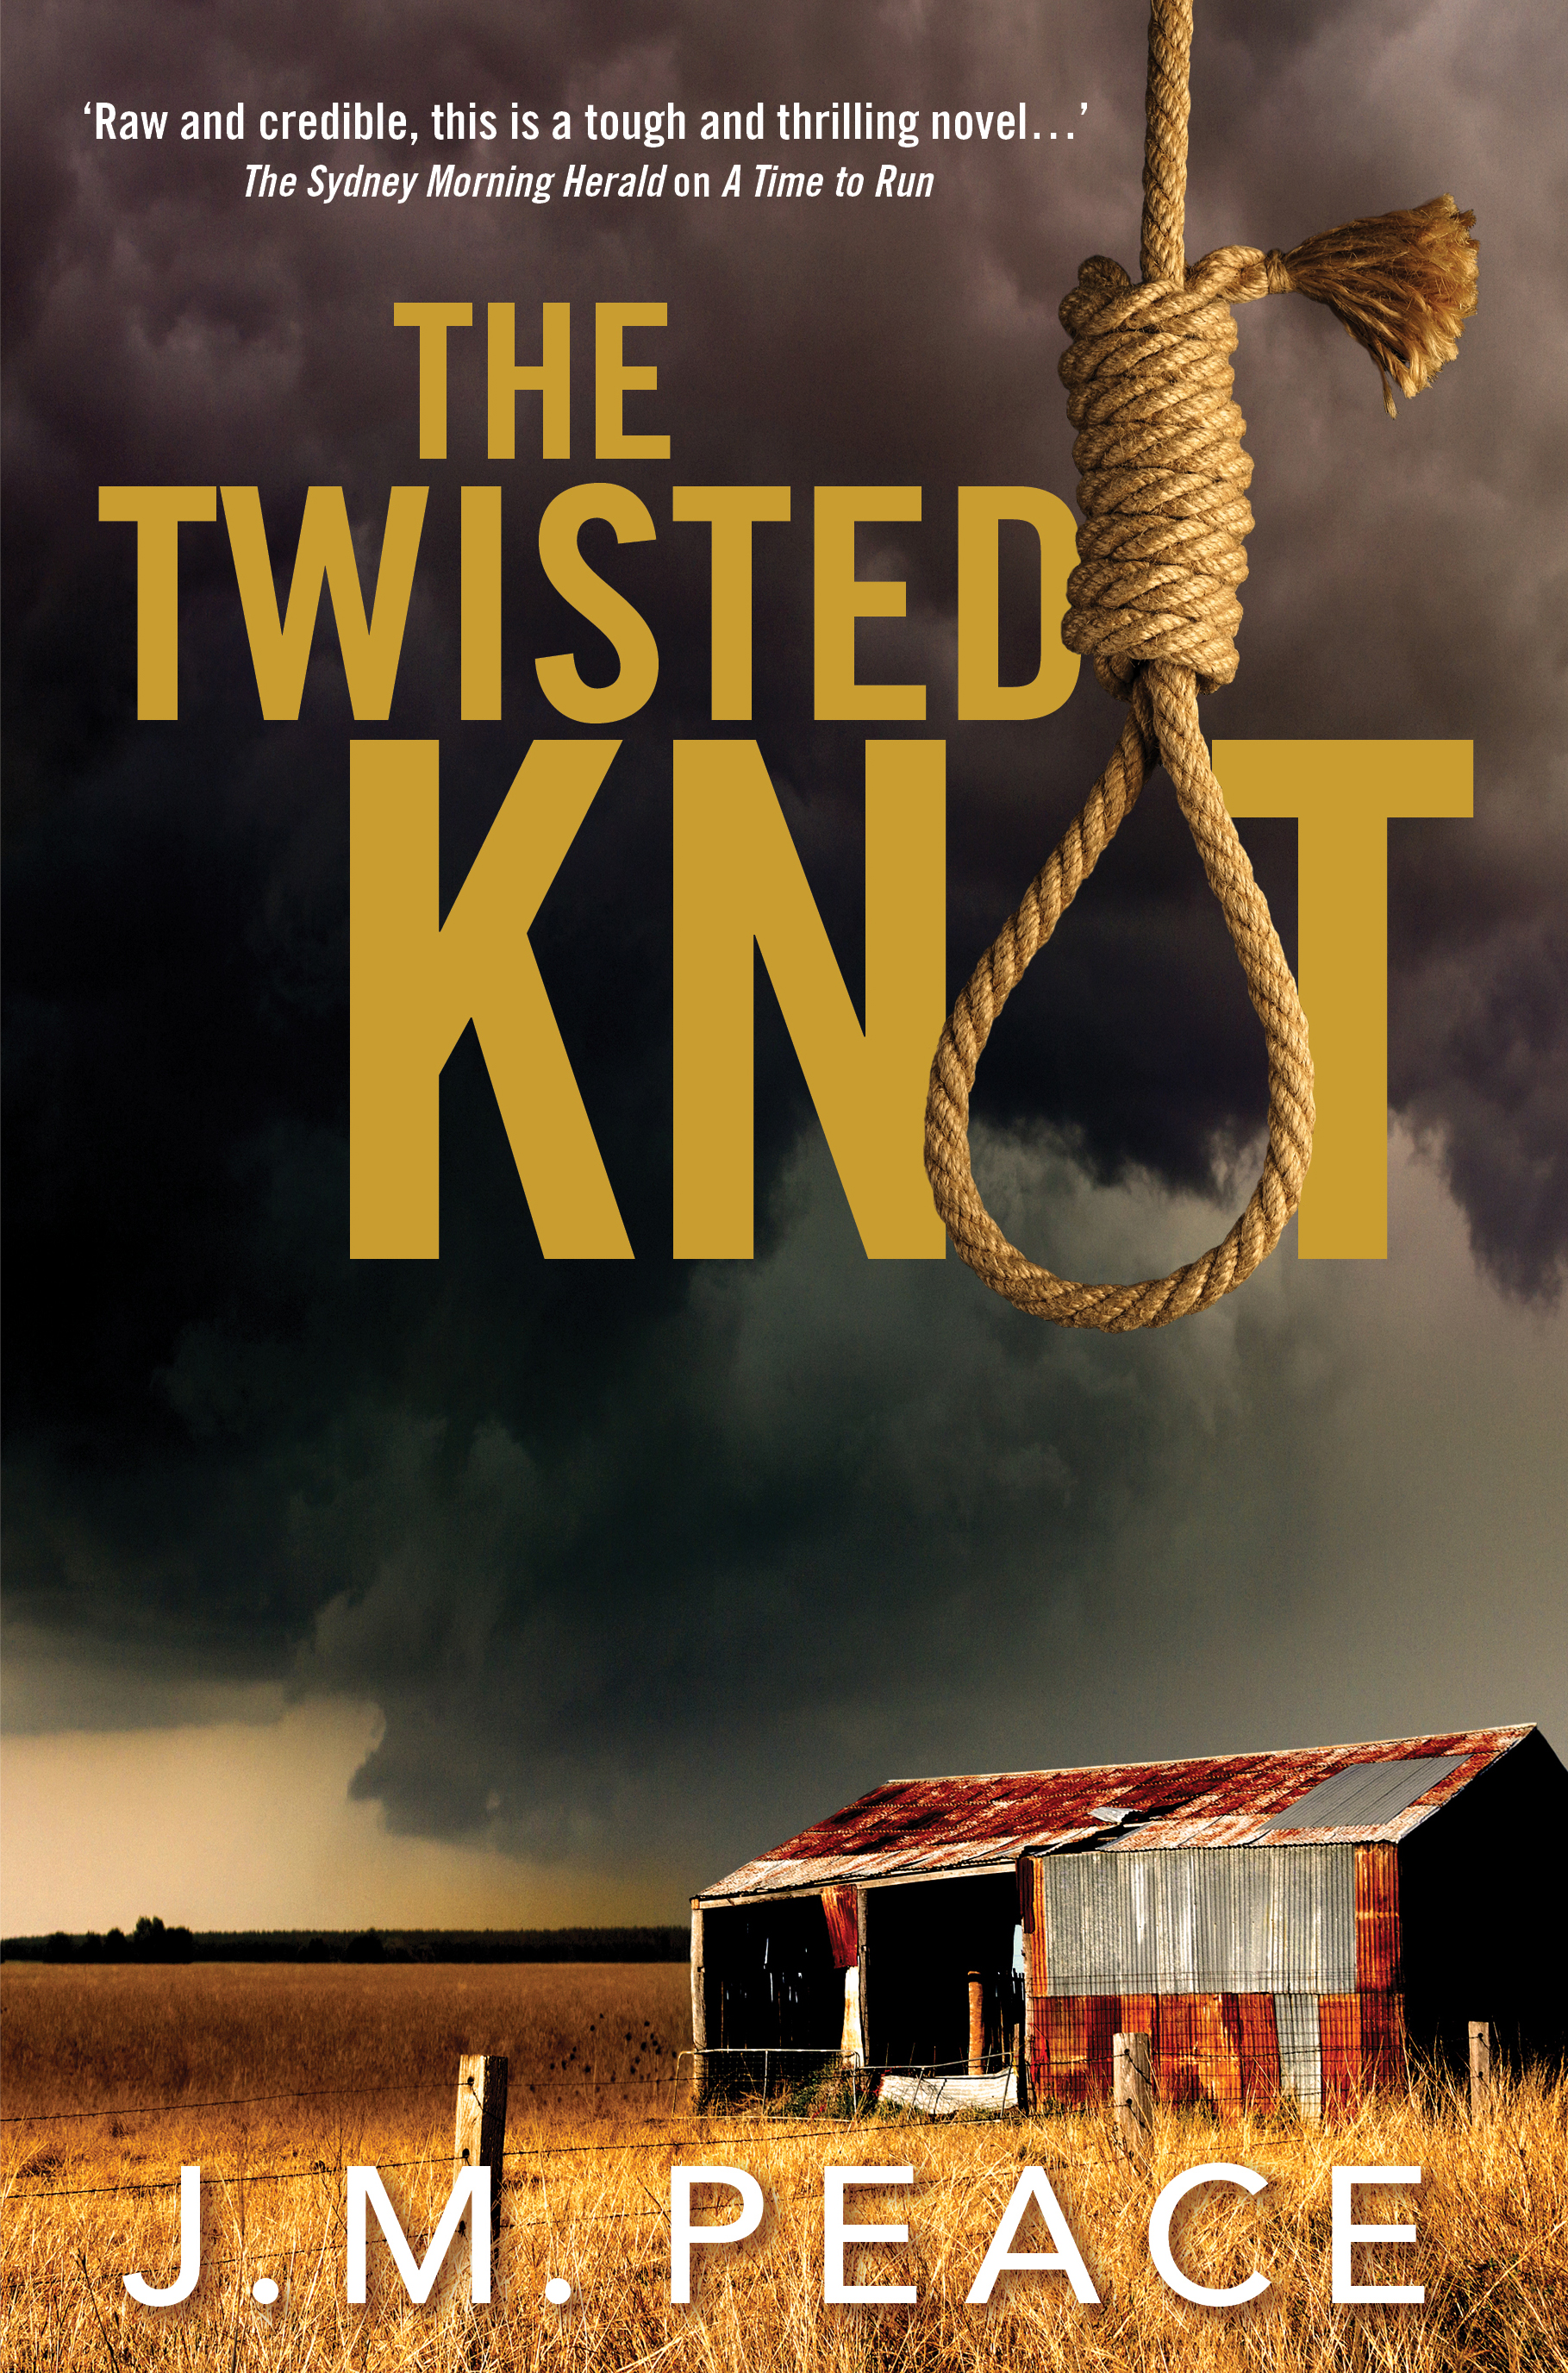 The Twisted Knot